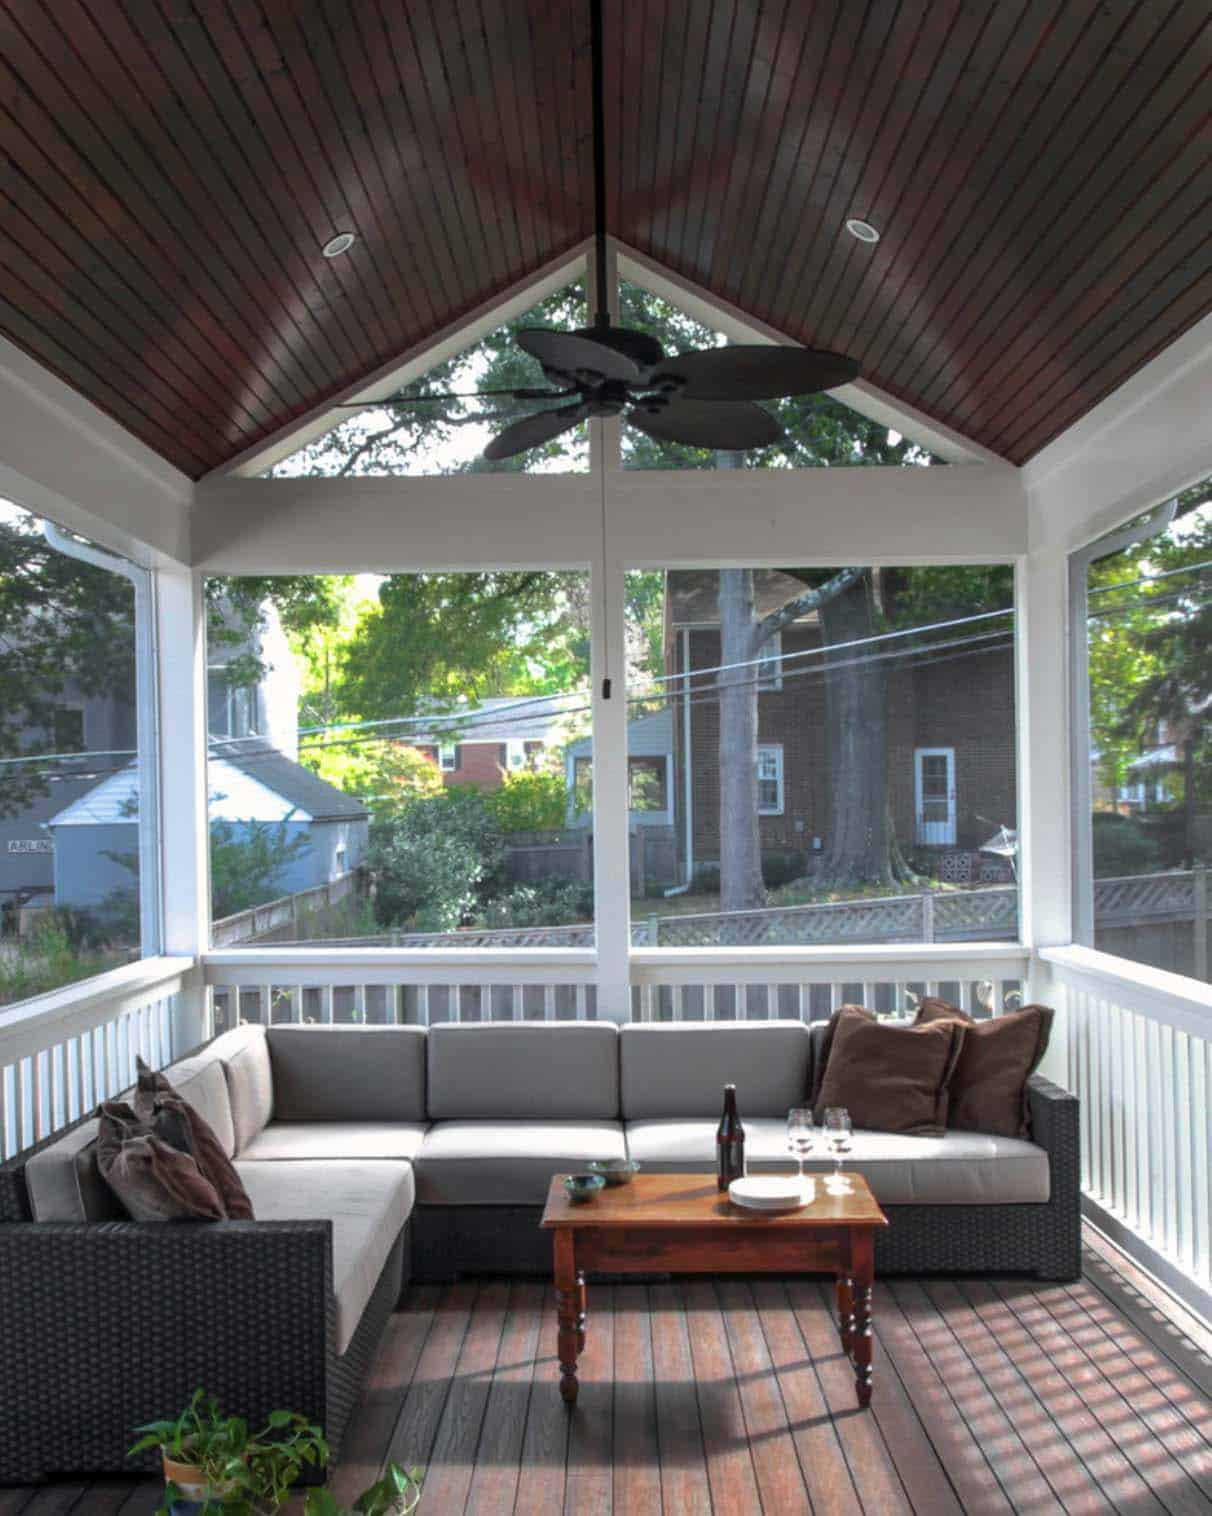 Best ideas about Screen In Patio . Save or Pin 38 Amazingly cozy and relaxing screened porch design ideas Now.